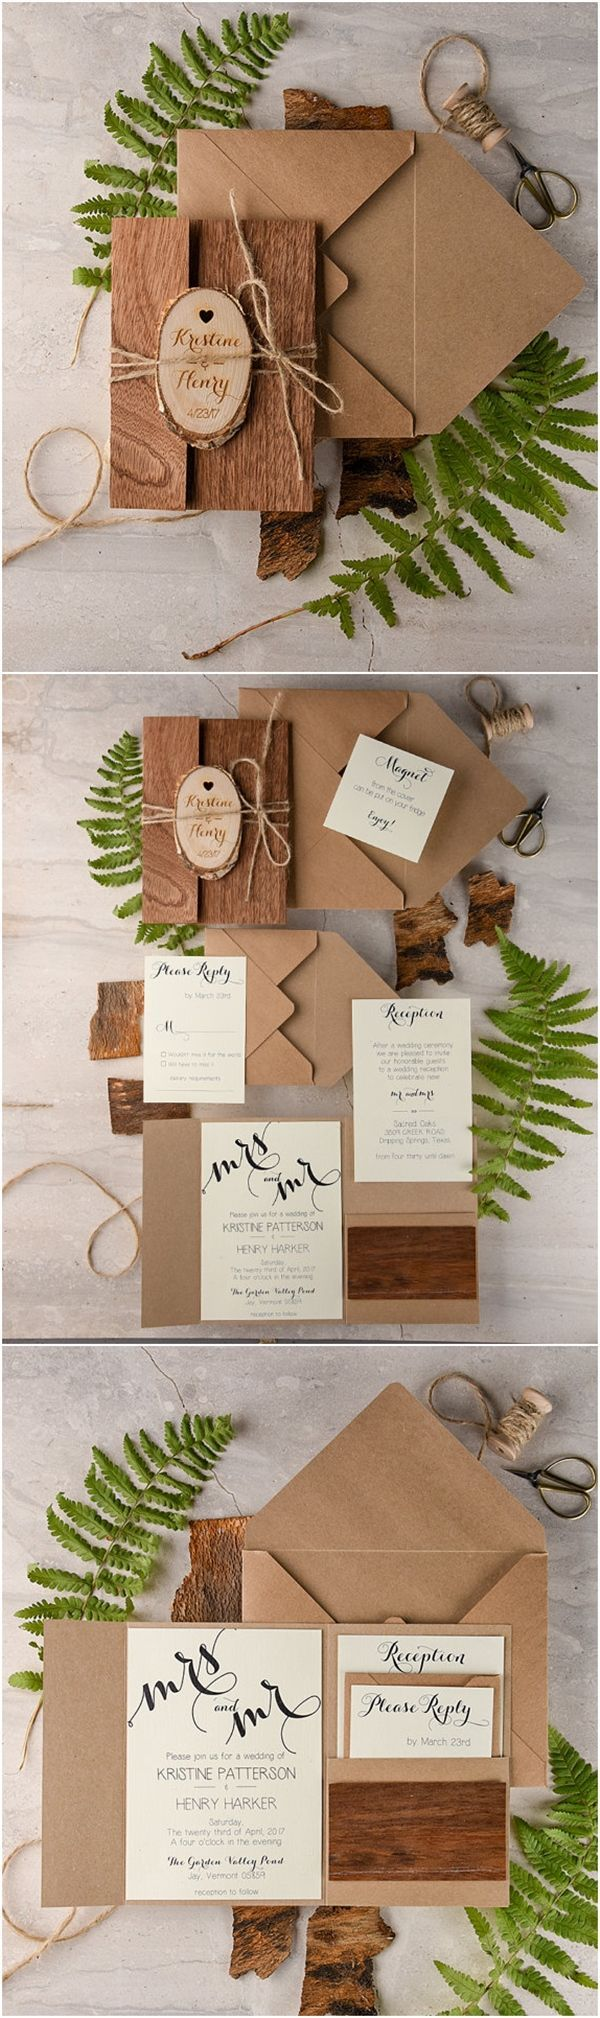 469 best Wedding Ideas! images on Pinterest